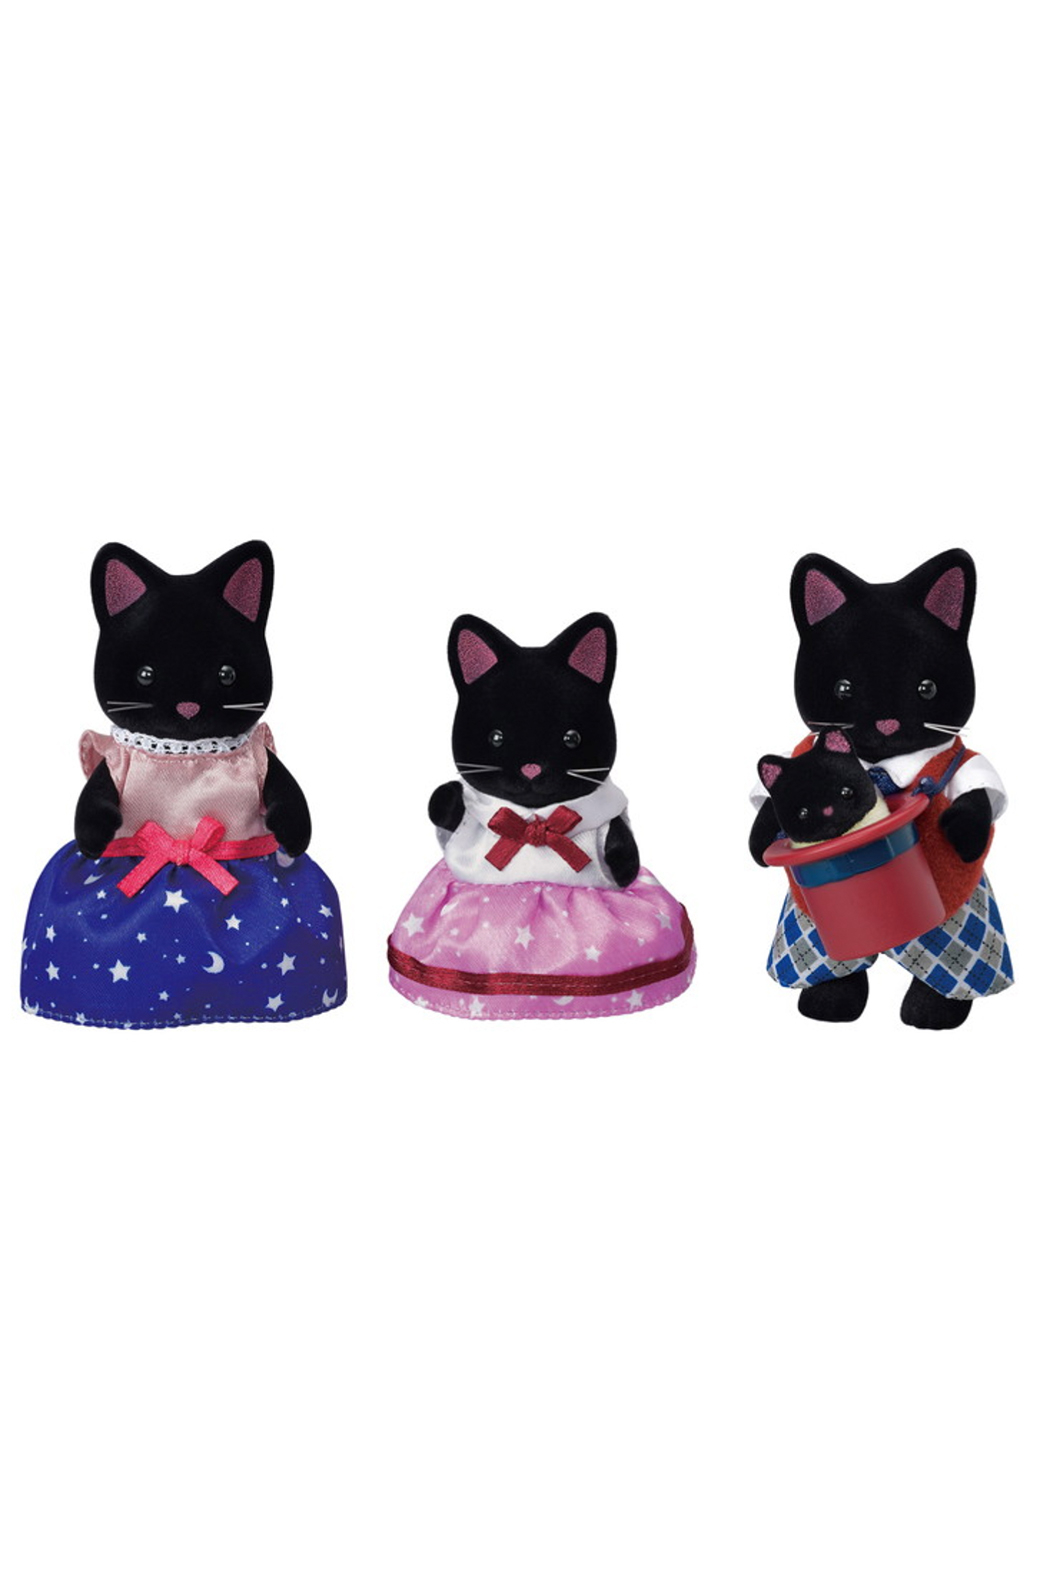 Calico Critters Midnight Cat Family - Main Image